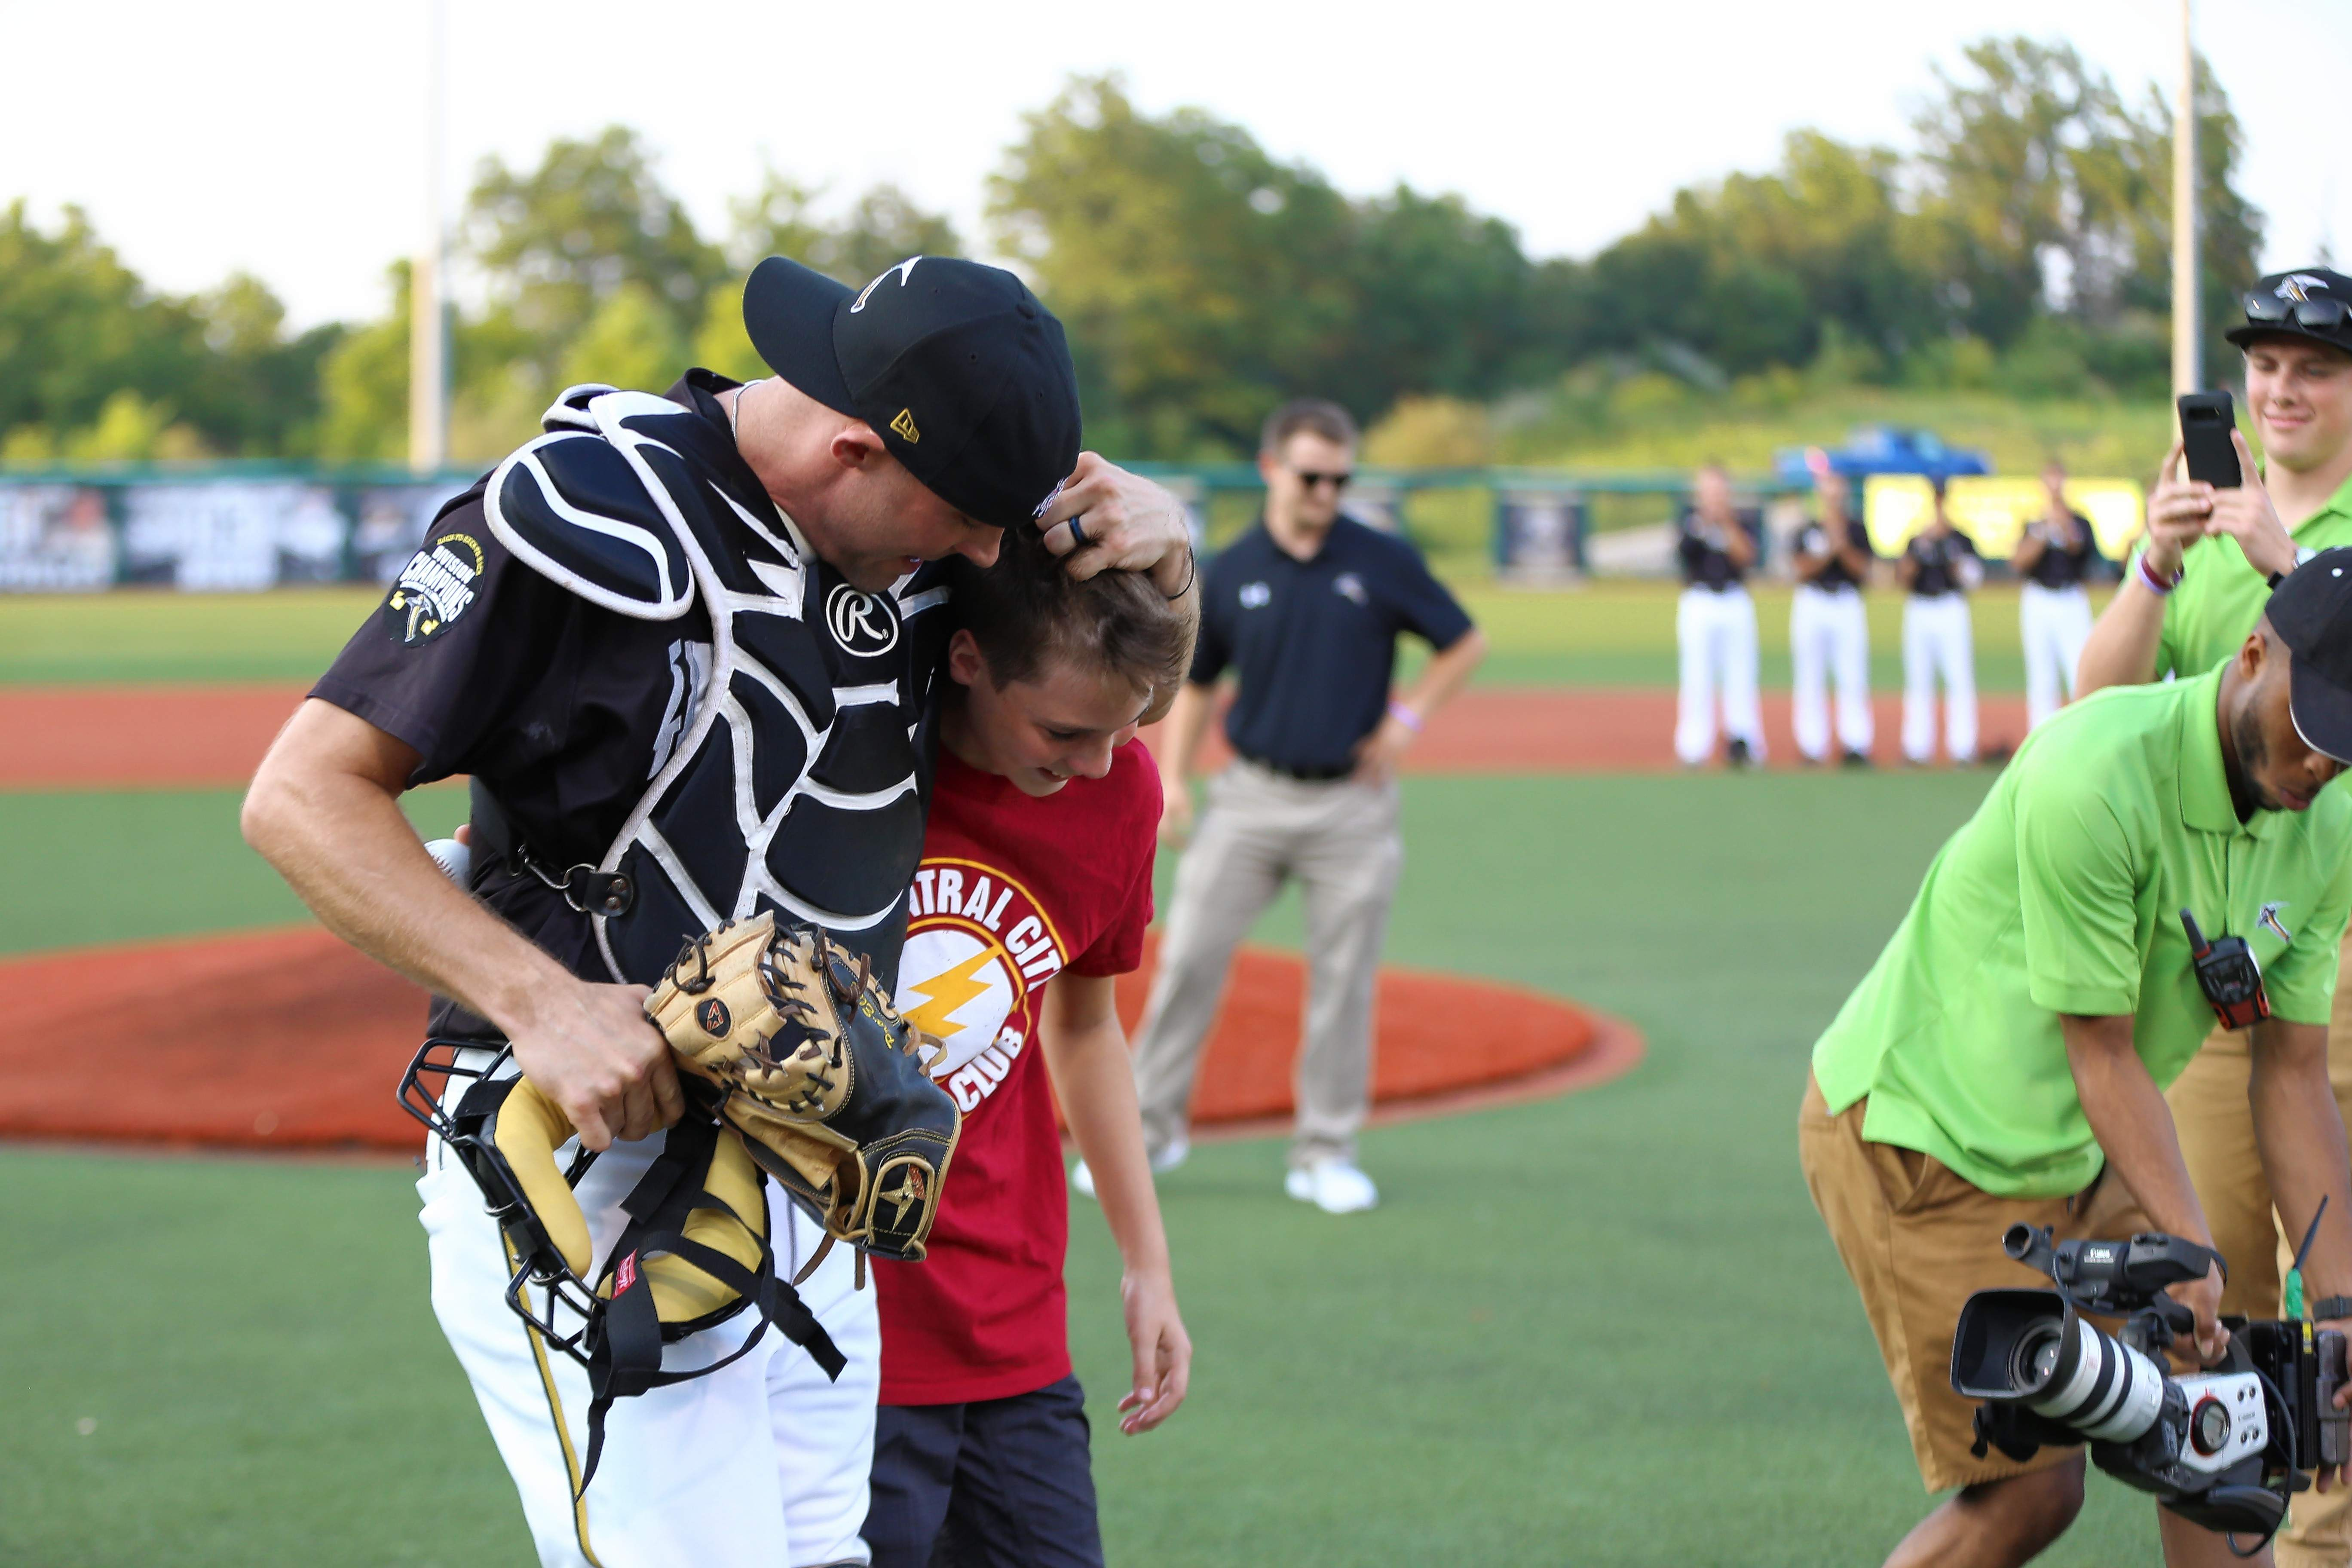 Kenny and Logan Hatton of Harrisburg walk off the field at Miners Stadium Wednesday night after their surprise reunion.